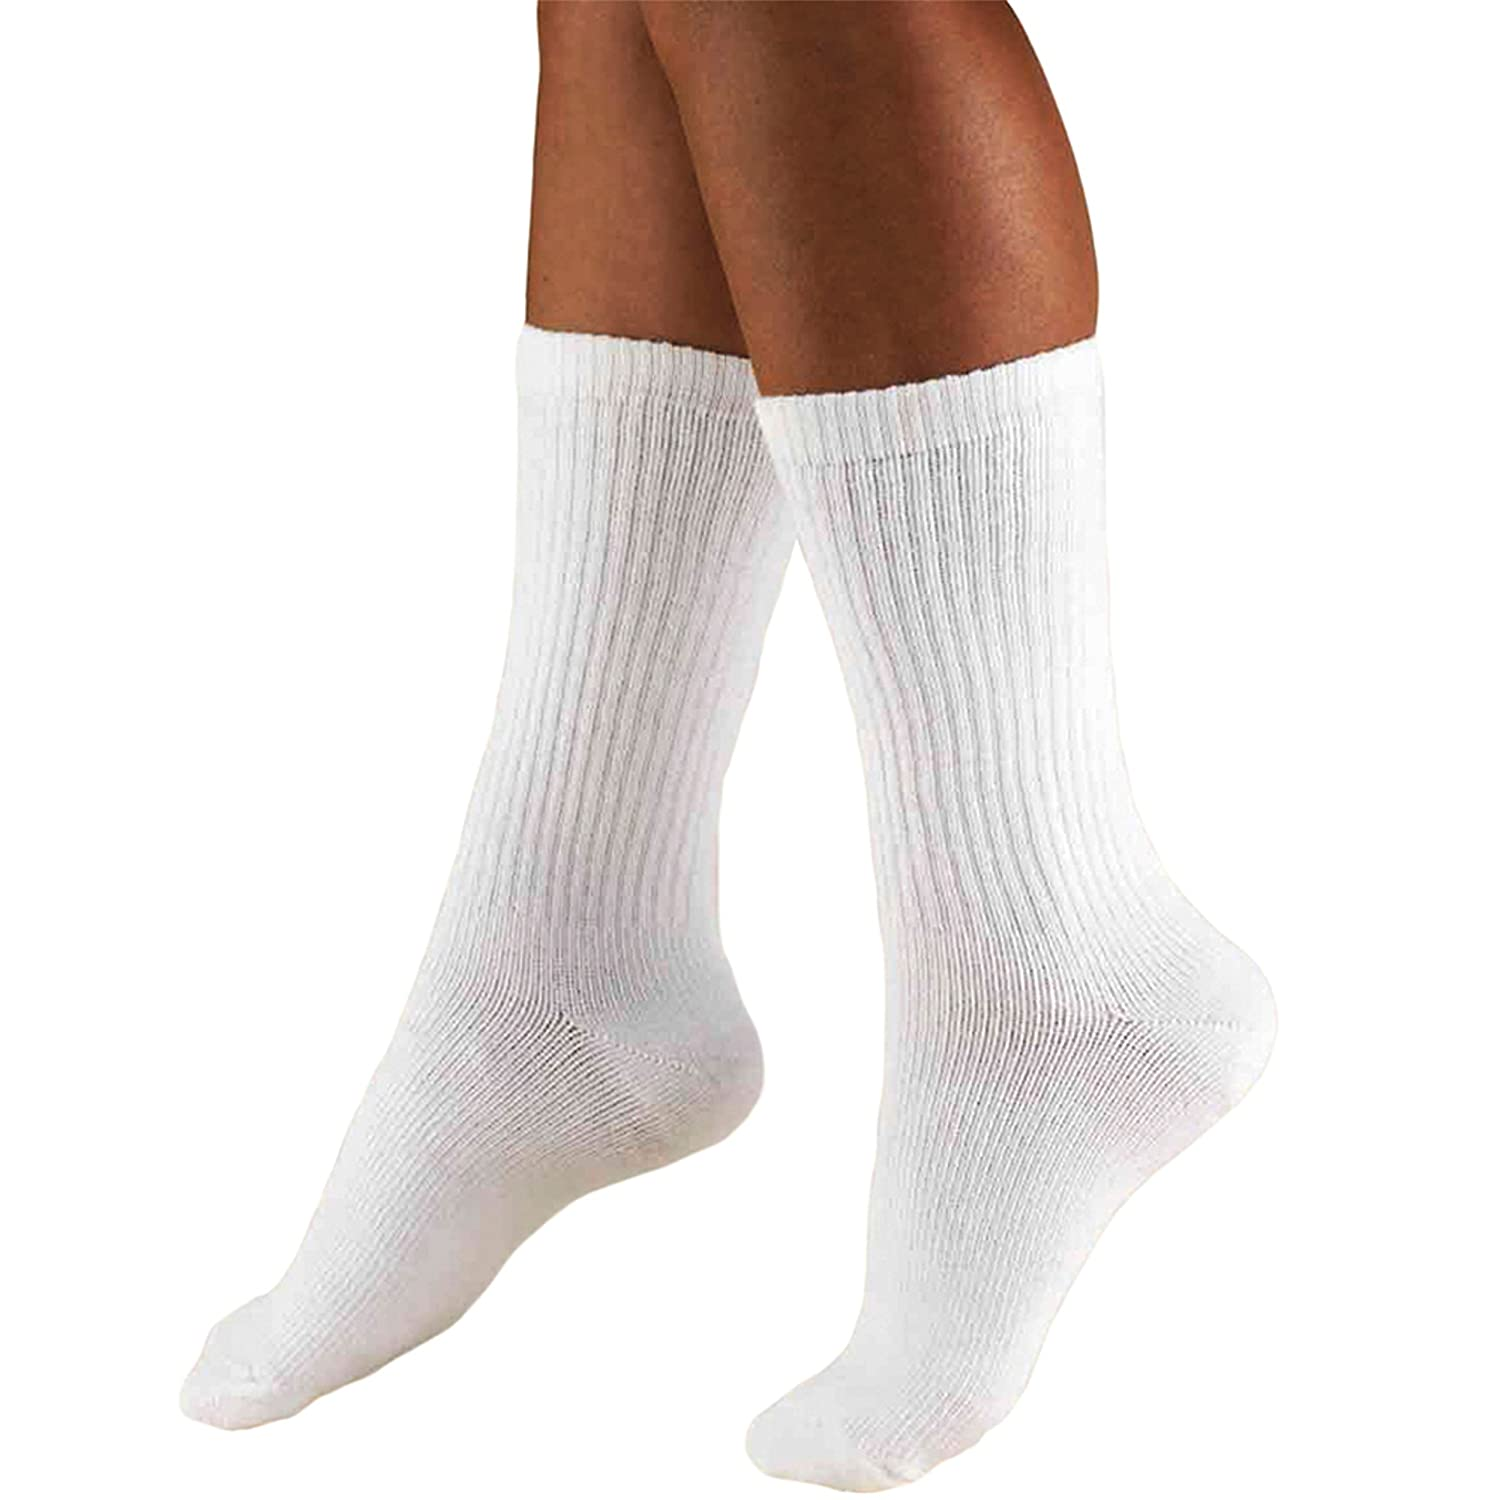 Amazon.com: Truform Mens 15-20 mmHg Cushioned Athletic Support Compression Socks, White, Large: Health & Personal Care